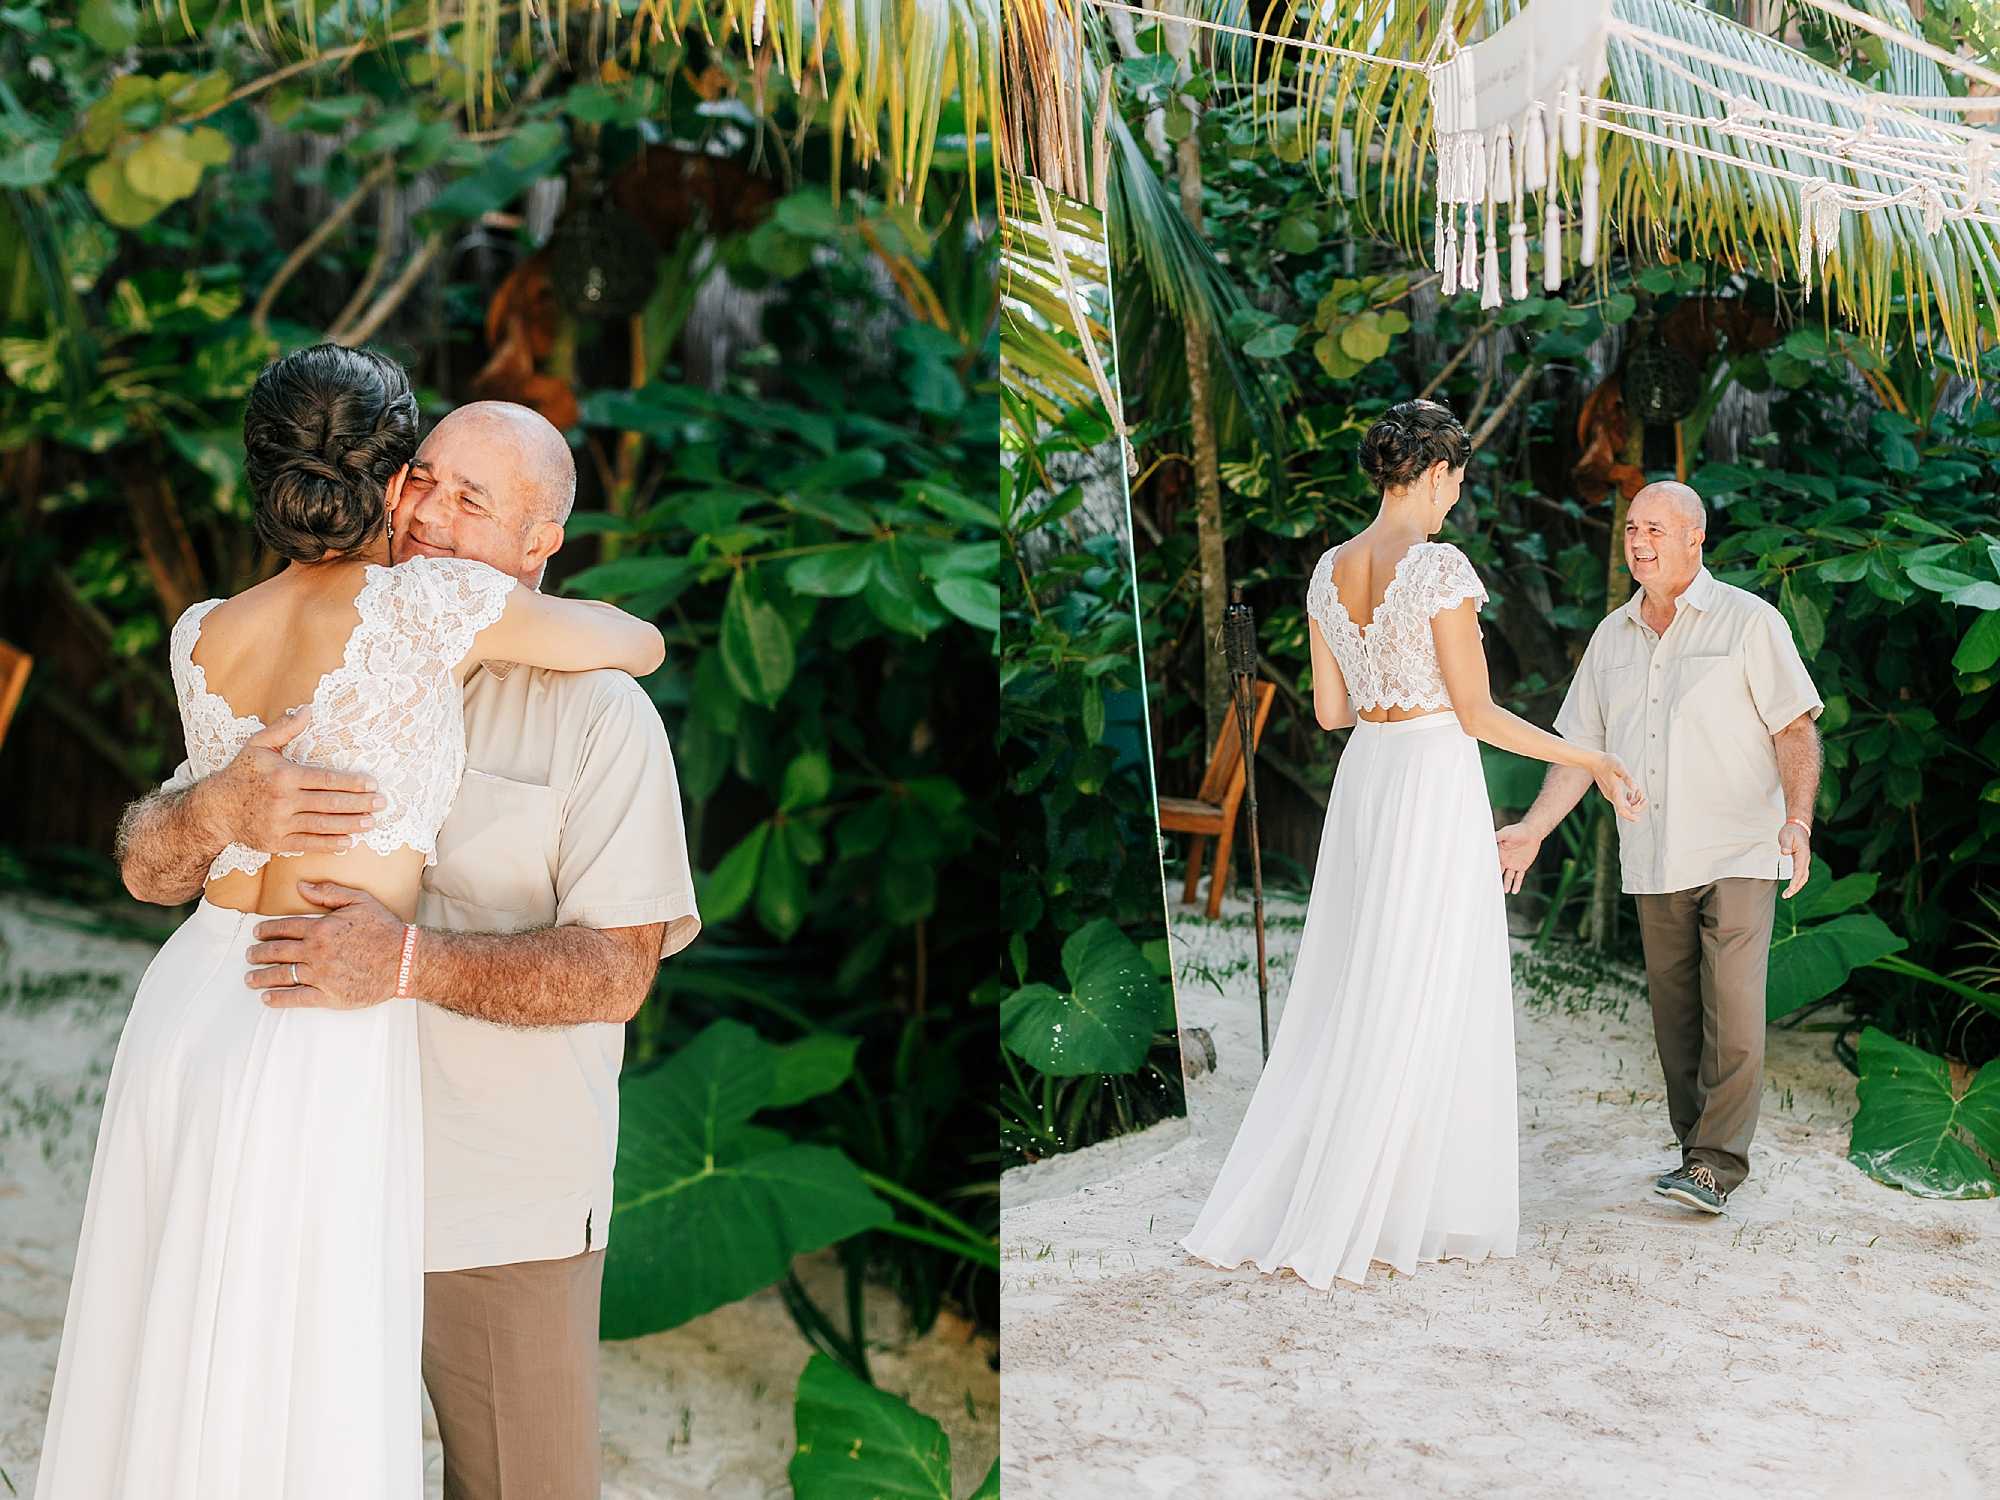 Stylish and Candid Destination Film Wedding Photography in Tulum Mexico by Magdalena Studios 0009.